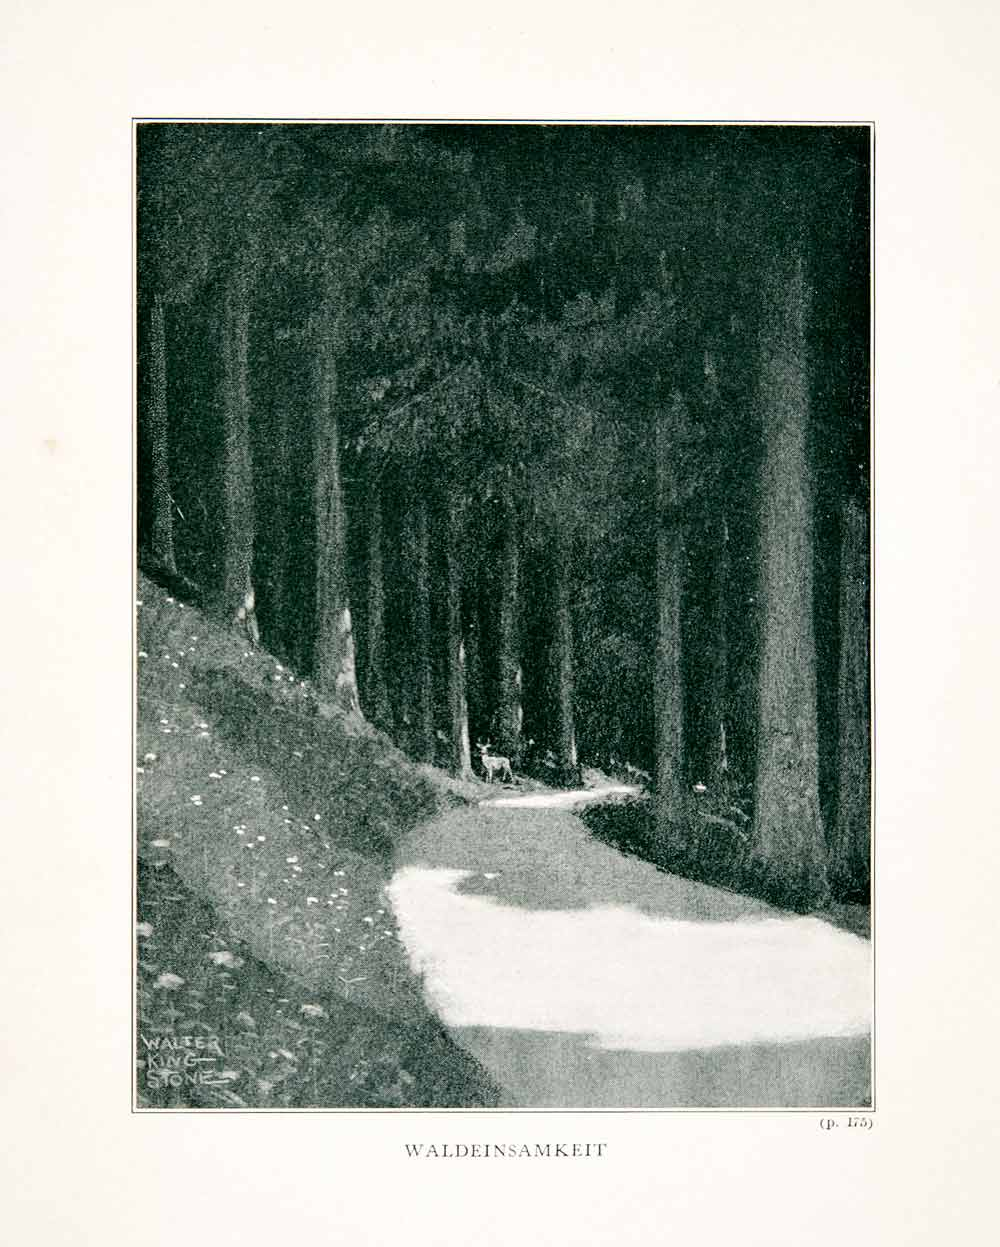 1910 Print Walter King Stone Waldeinsamkeit Deer Forest Woods Germany XGUB8